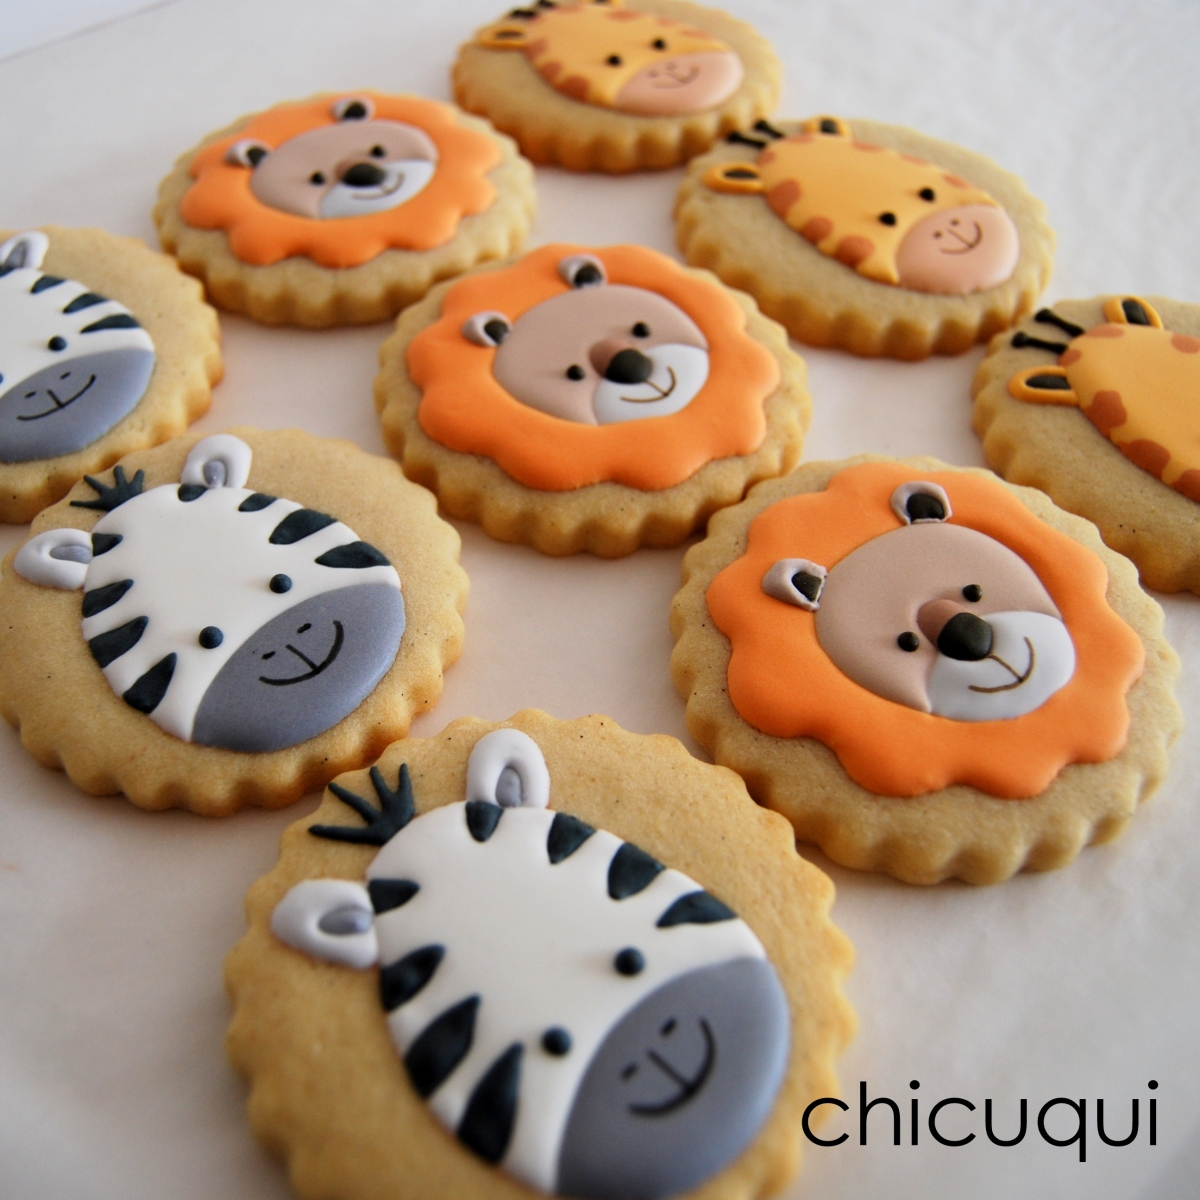 Animales de la selva, en galletas decoradas